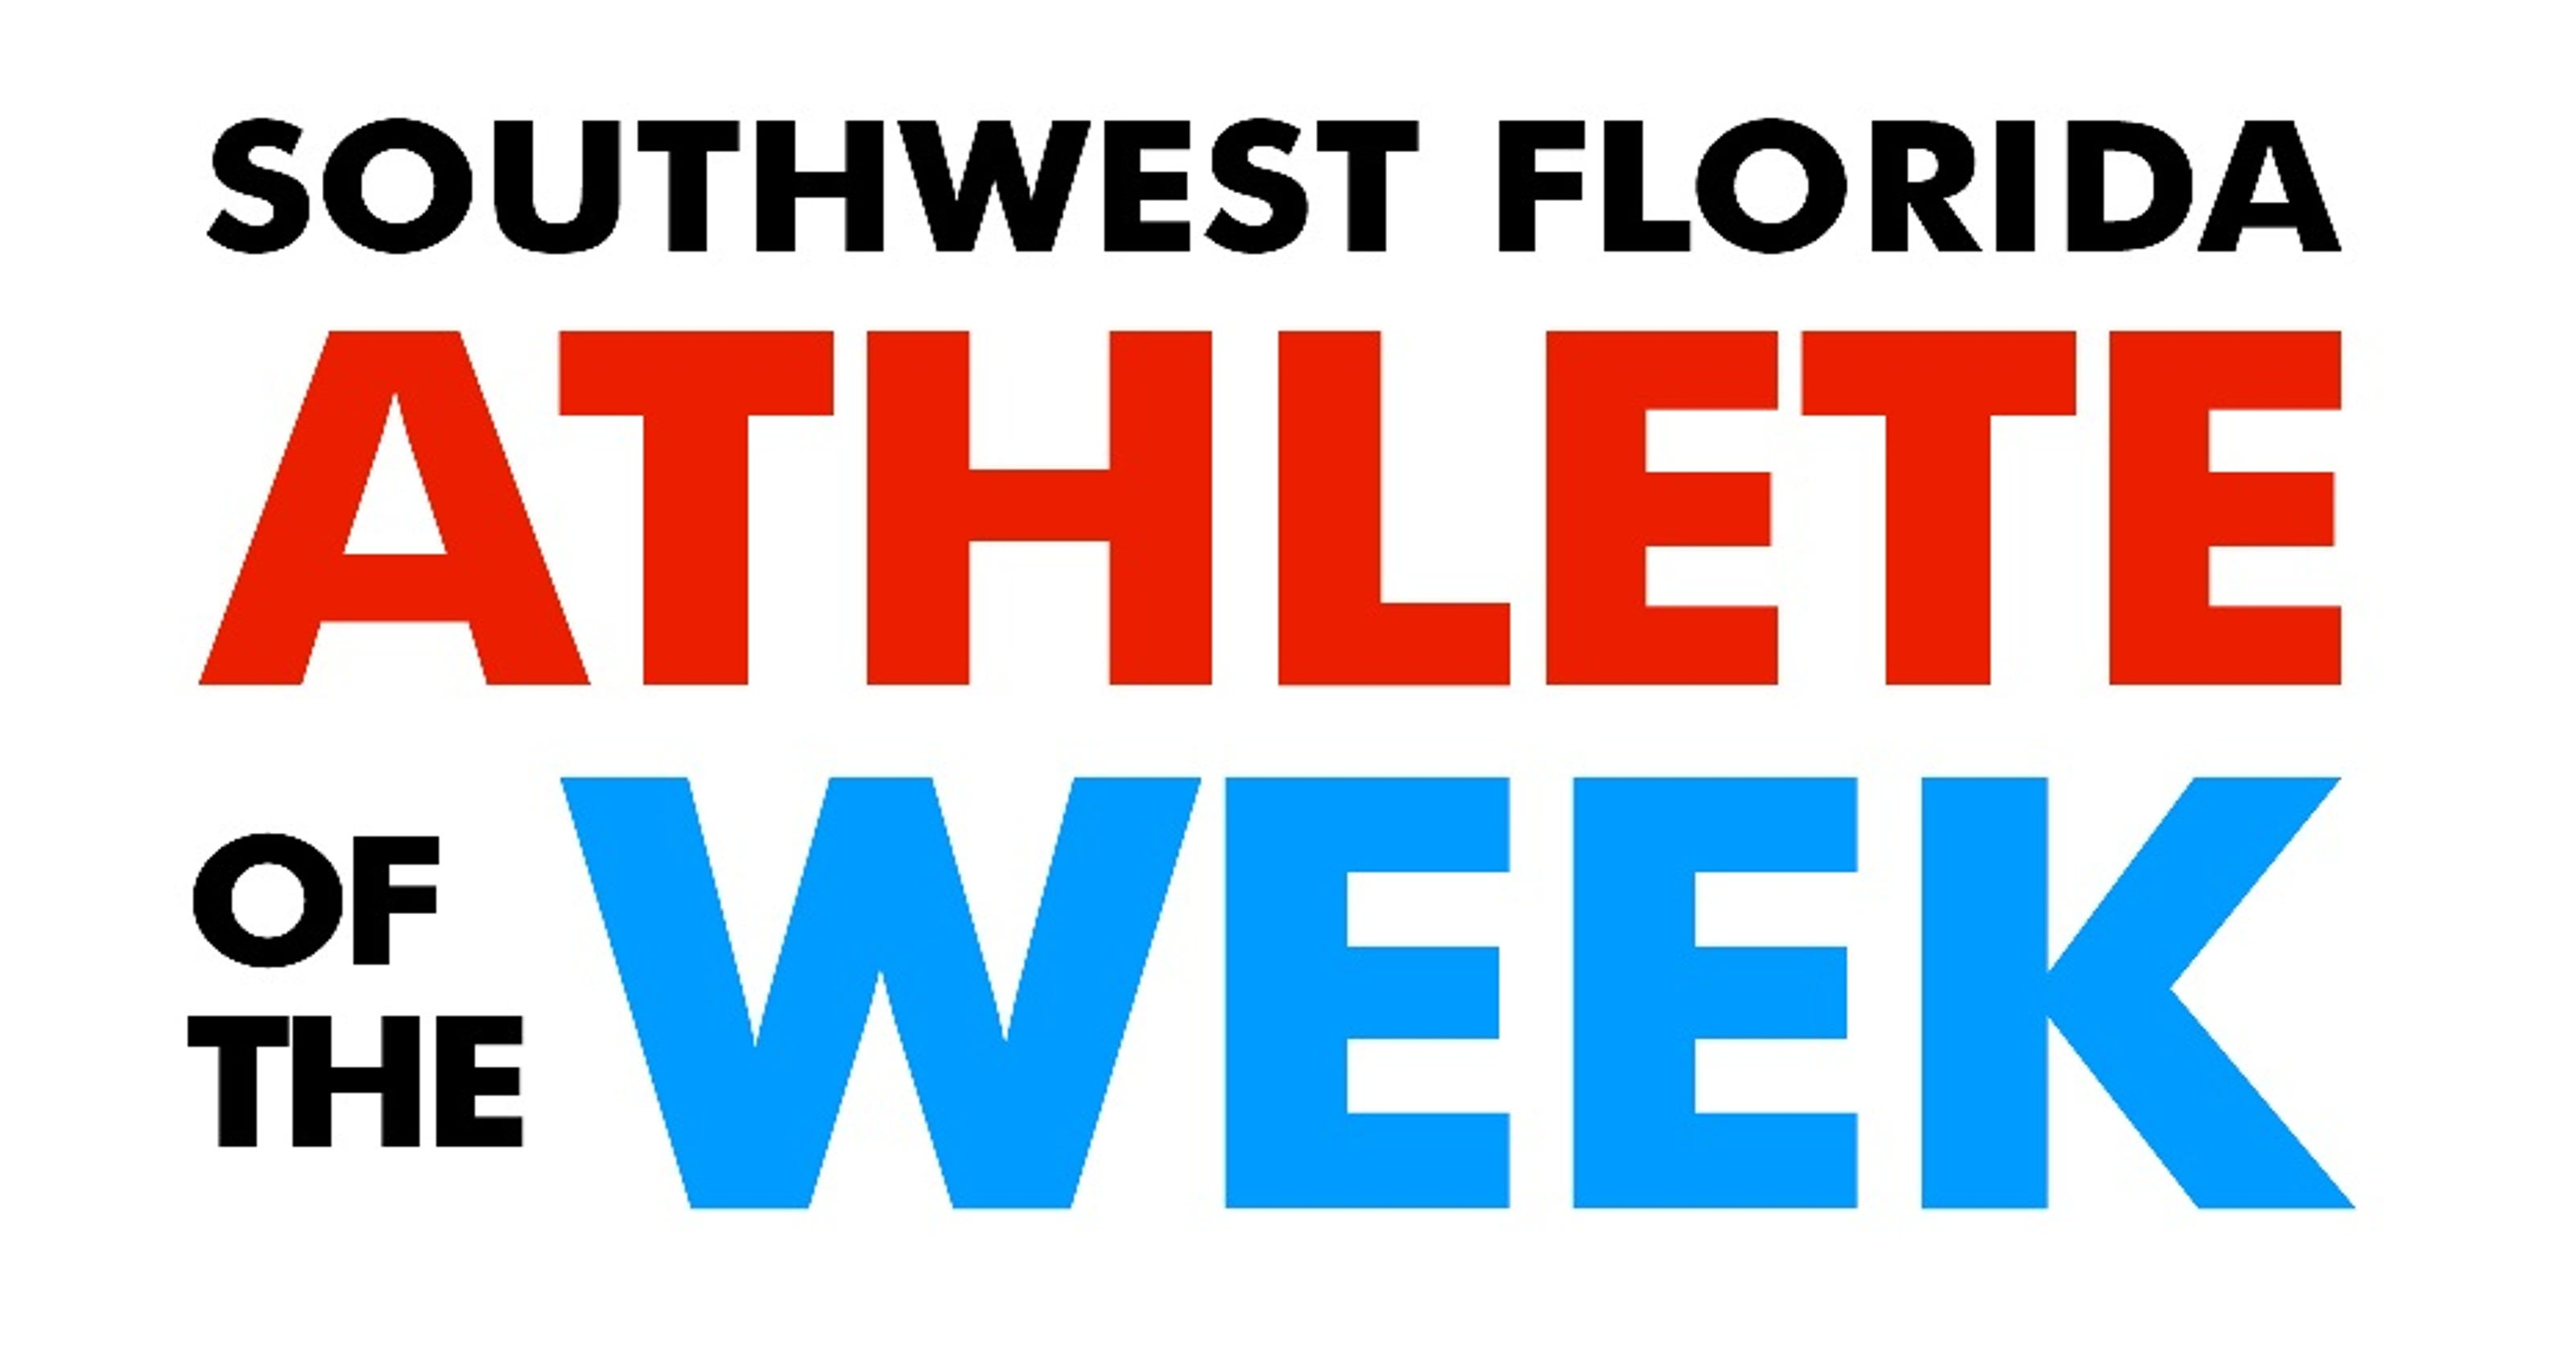 9 from Naples, Collier County high schools up for Athlete of